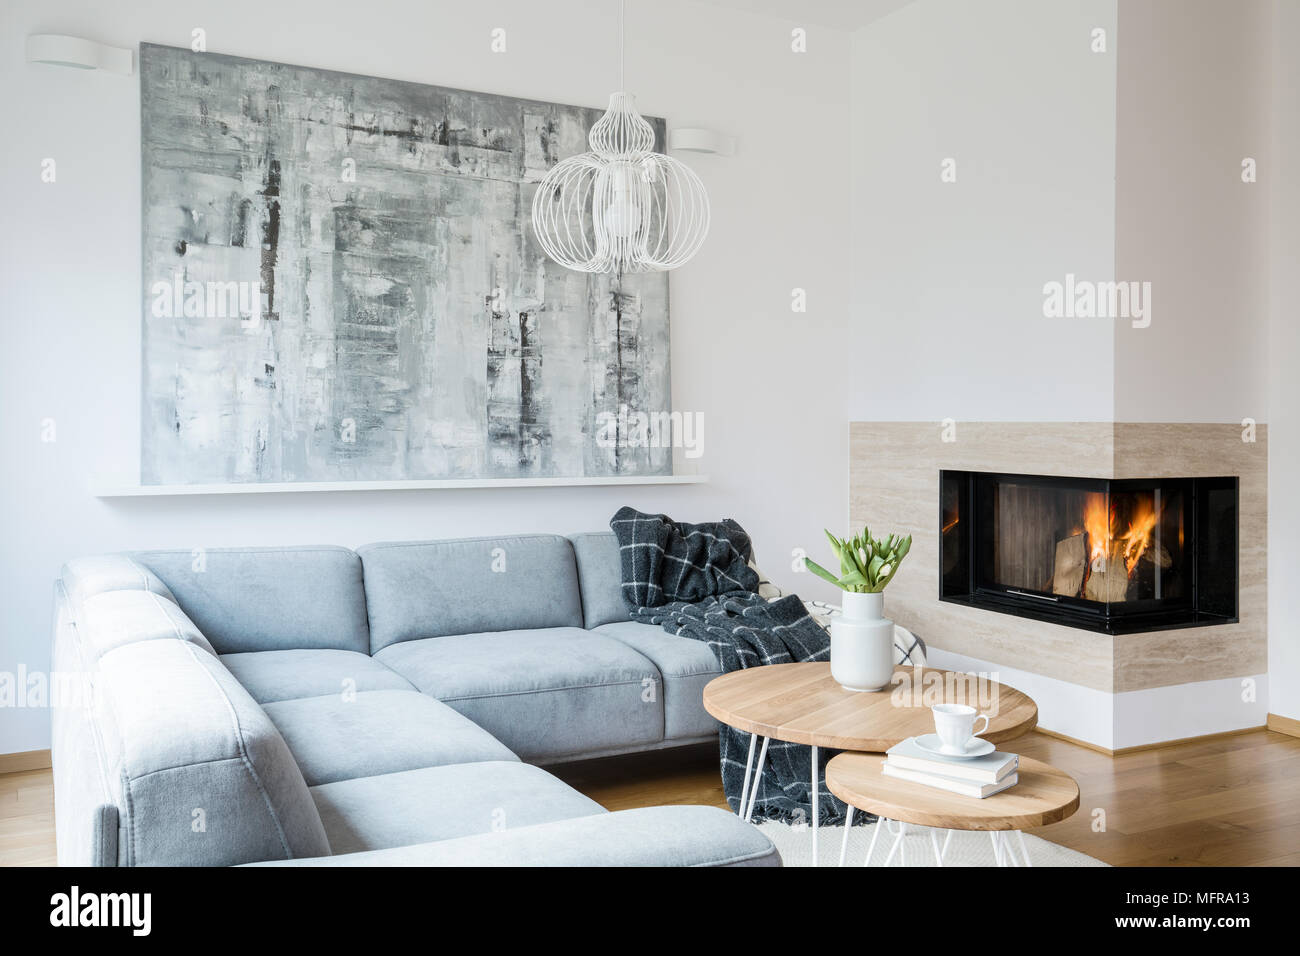 99 Beautiful White And Grey Living Room Interior: Black Blanket Thrown On A Grey Corner Lounge In White